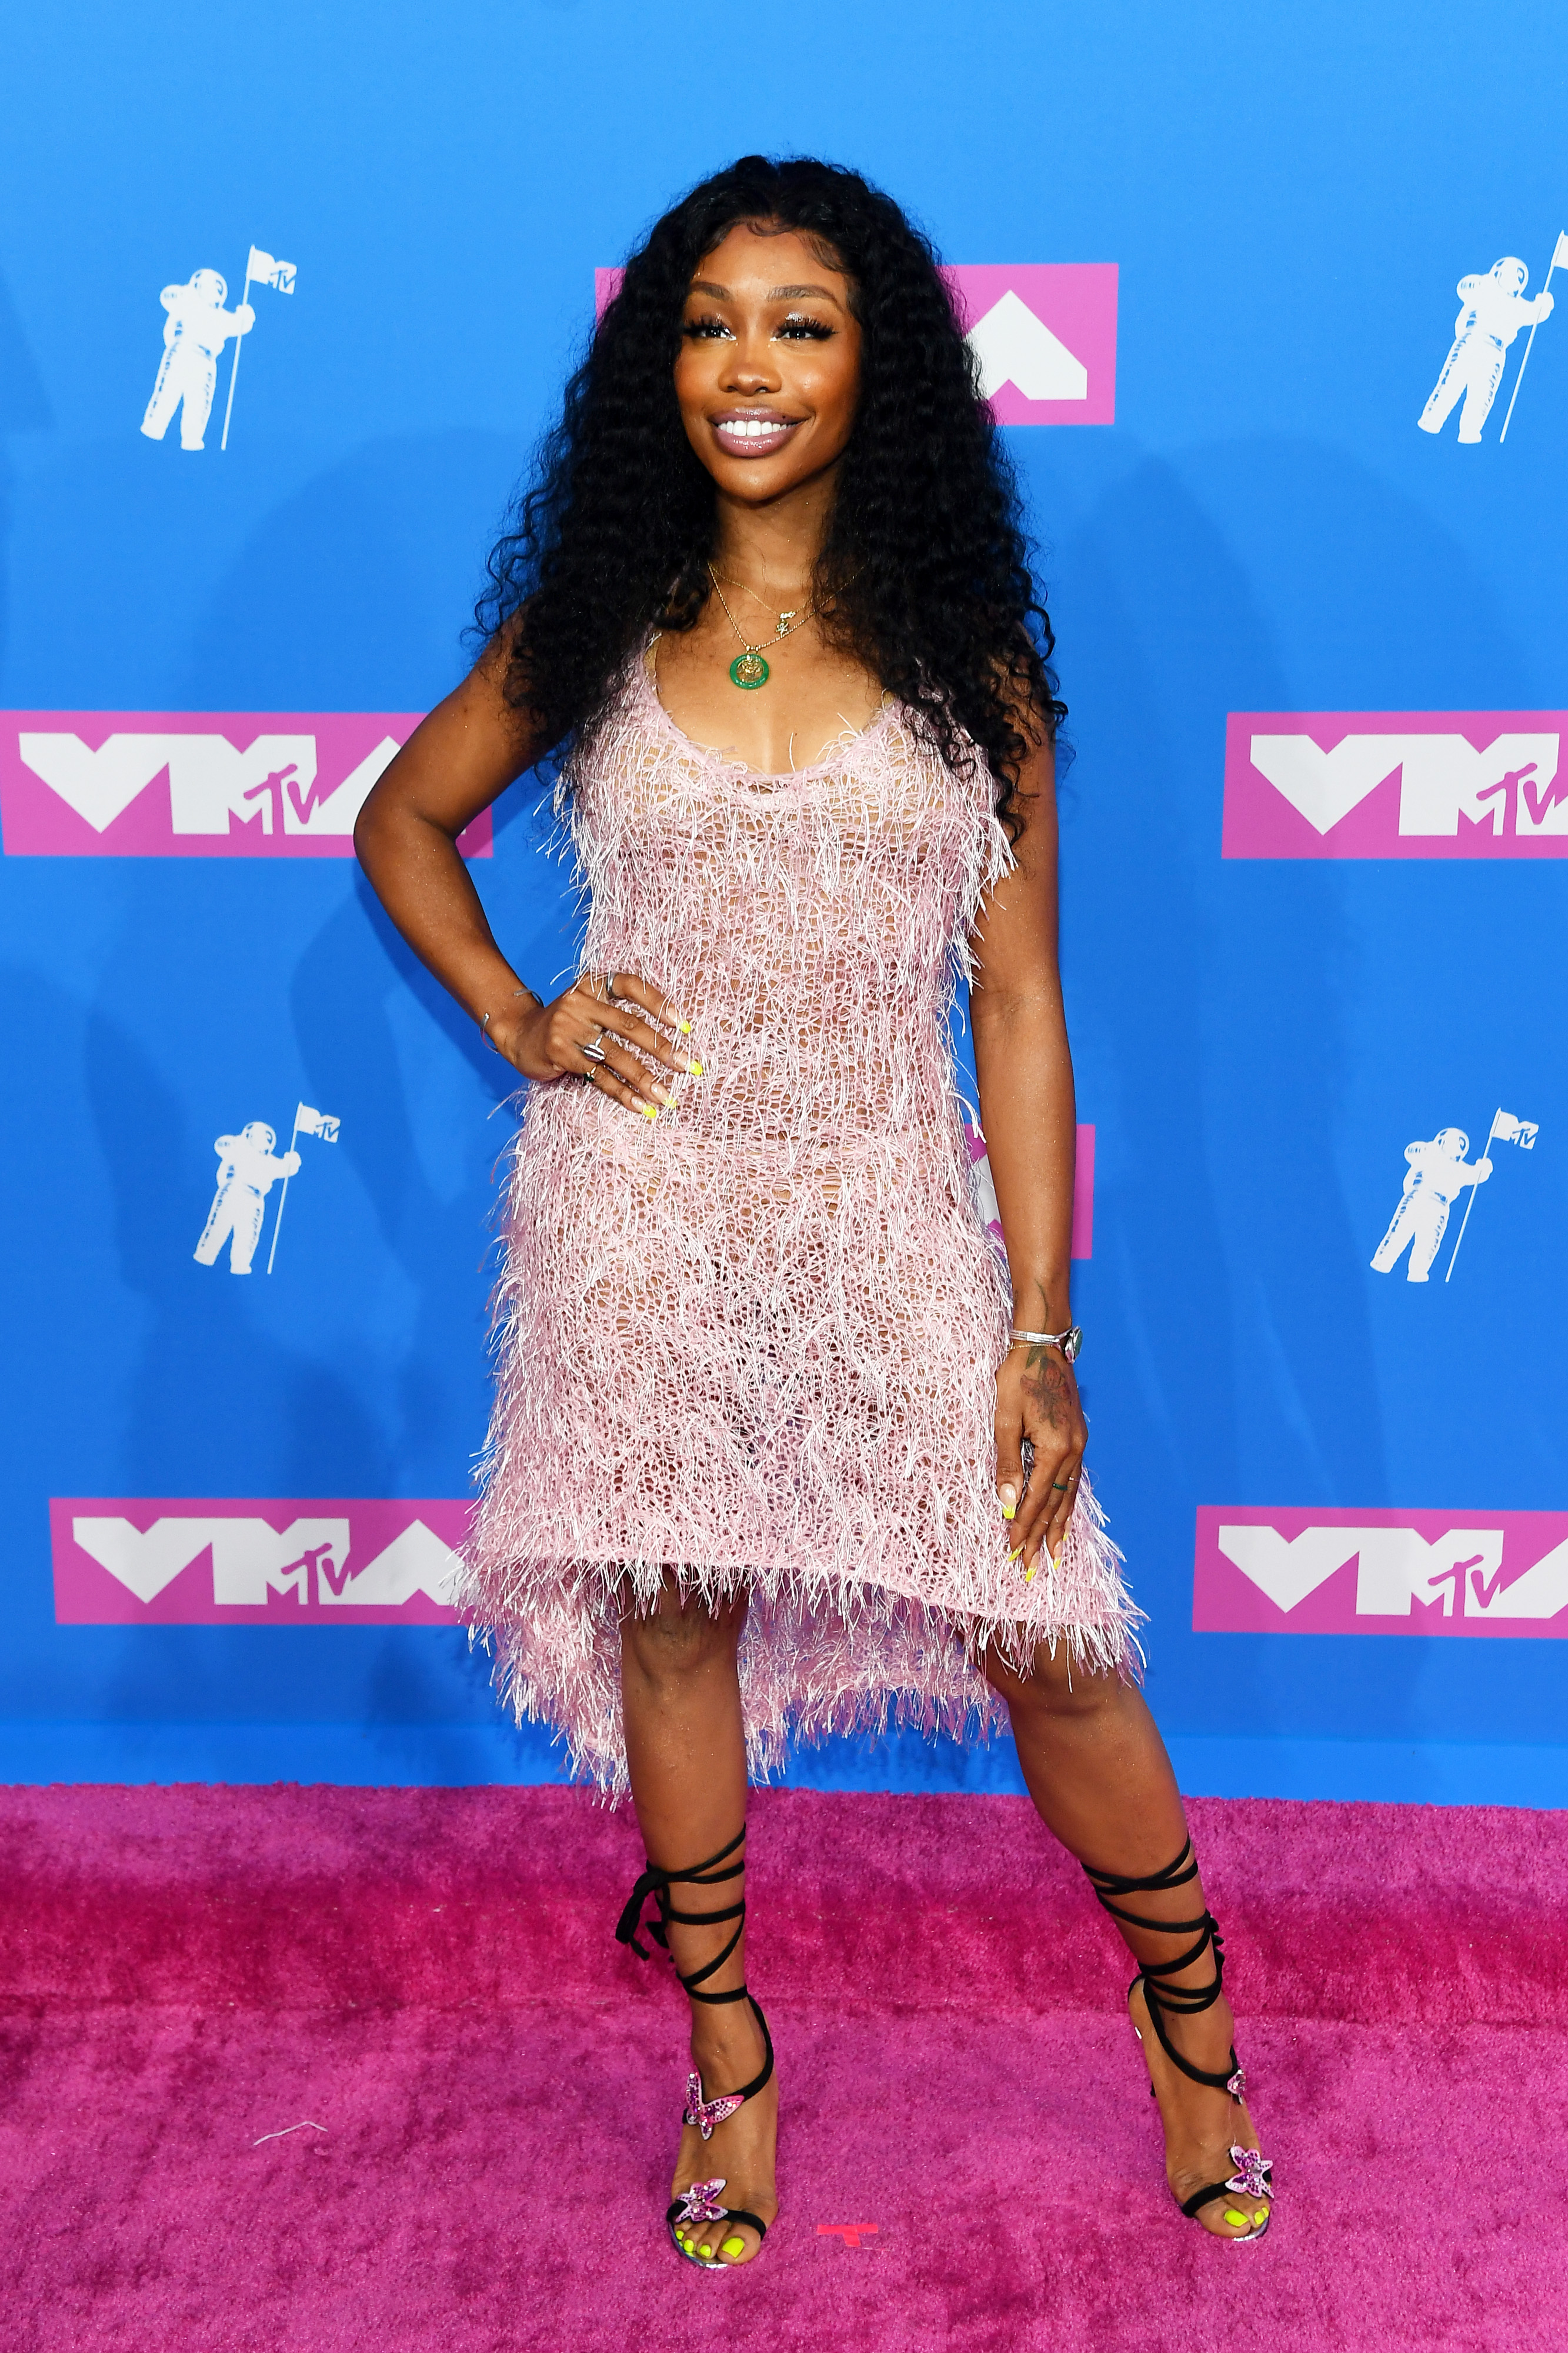 SZA attends the 2018 MTV Video Music Awards at Radio City Music Hall on August 20, 2018 in New York City.